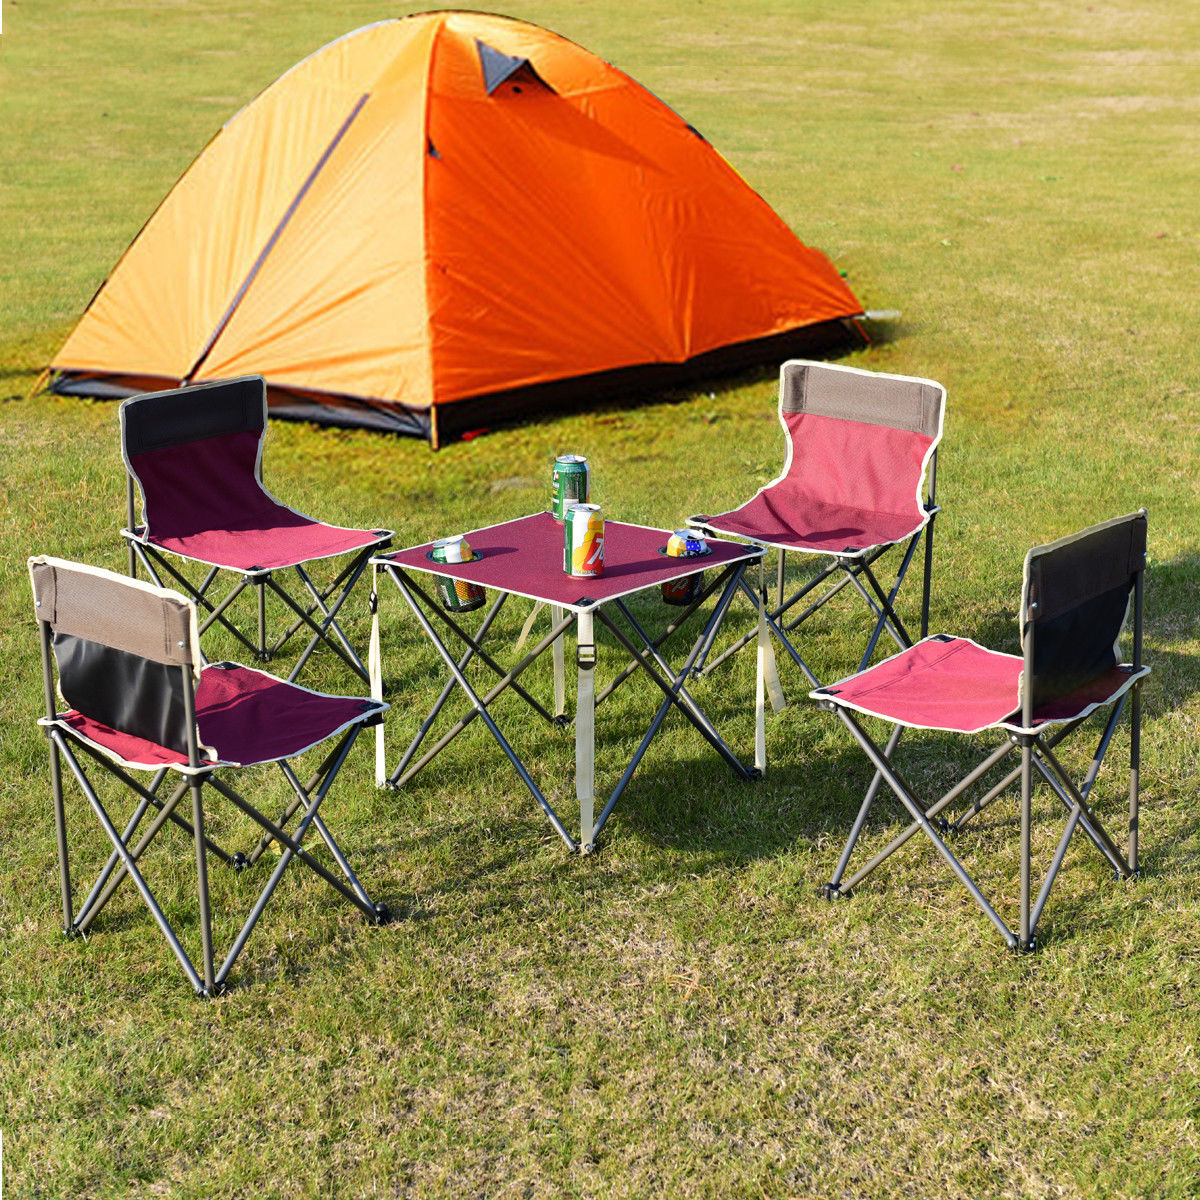 Giantex Portable Outdoor Furniture Set Table 4 Chairs Set Garden Camp Beach Picnic Folding Table Set With Carrying Bag OP3381RE